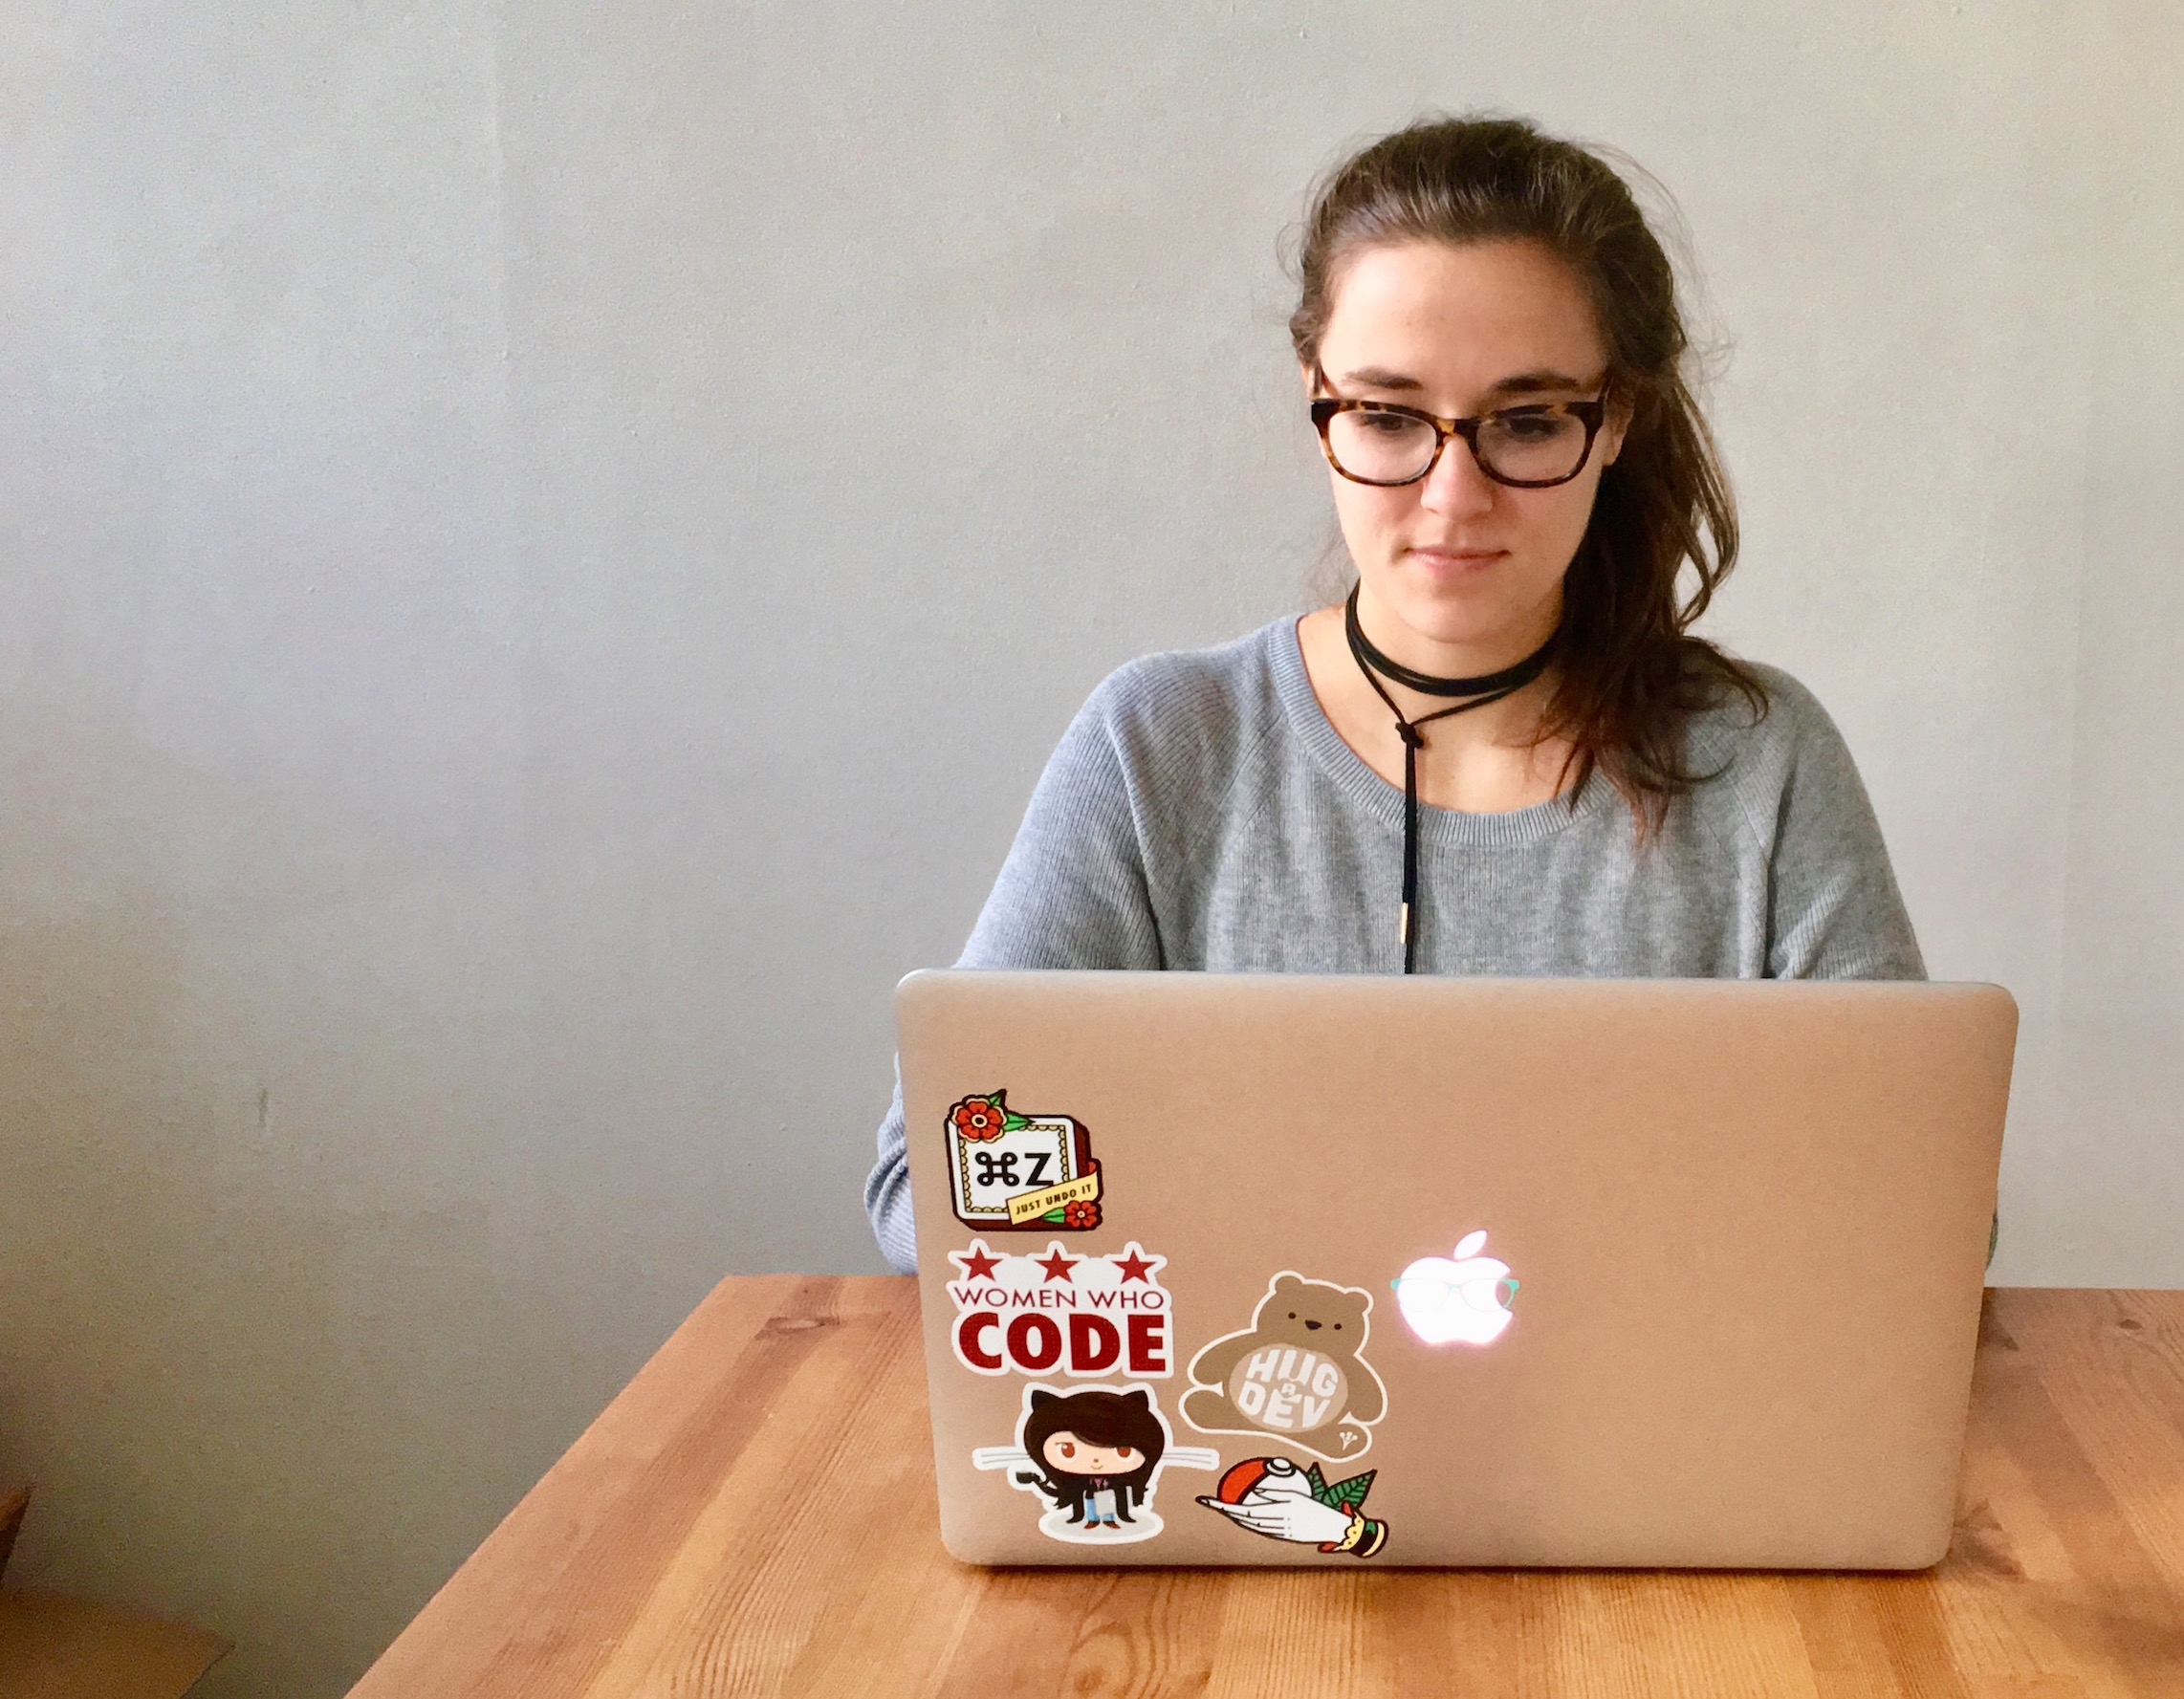 Mary-Katherine McKenzieHub I Member - Mary-Katherine is a self-taught programmer and a software engineer at WeddingWire. She stays active in the D.C. Tech community by being involved in Women Who Code DC and organizing the local branch of CodeNewbie meetups.